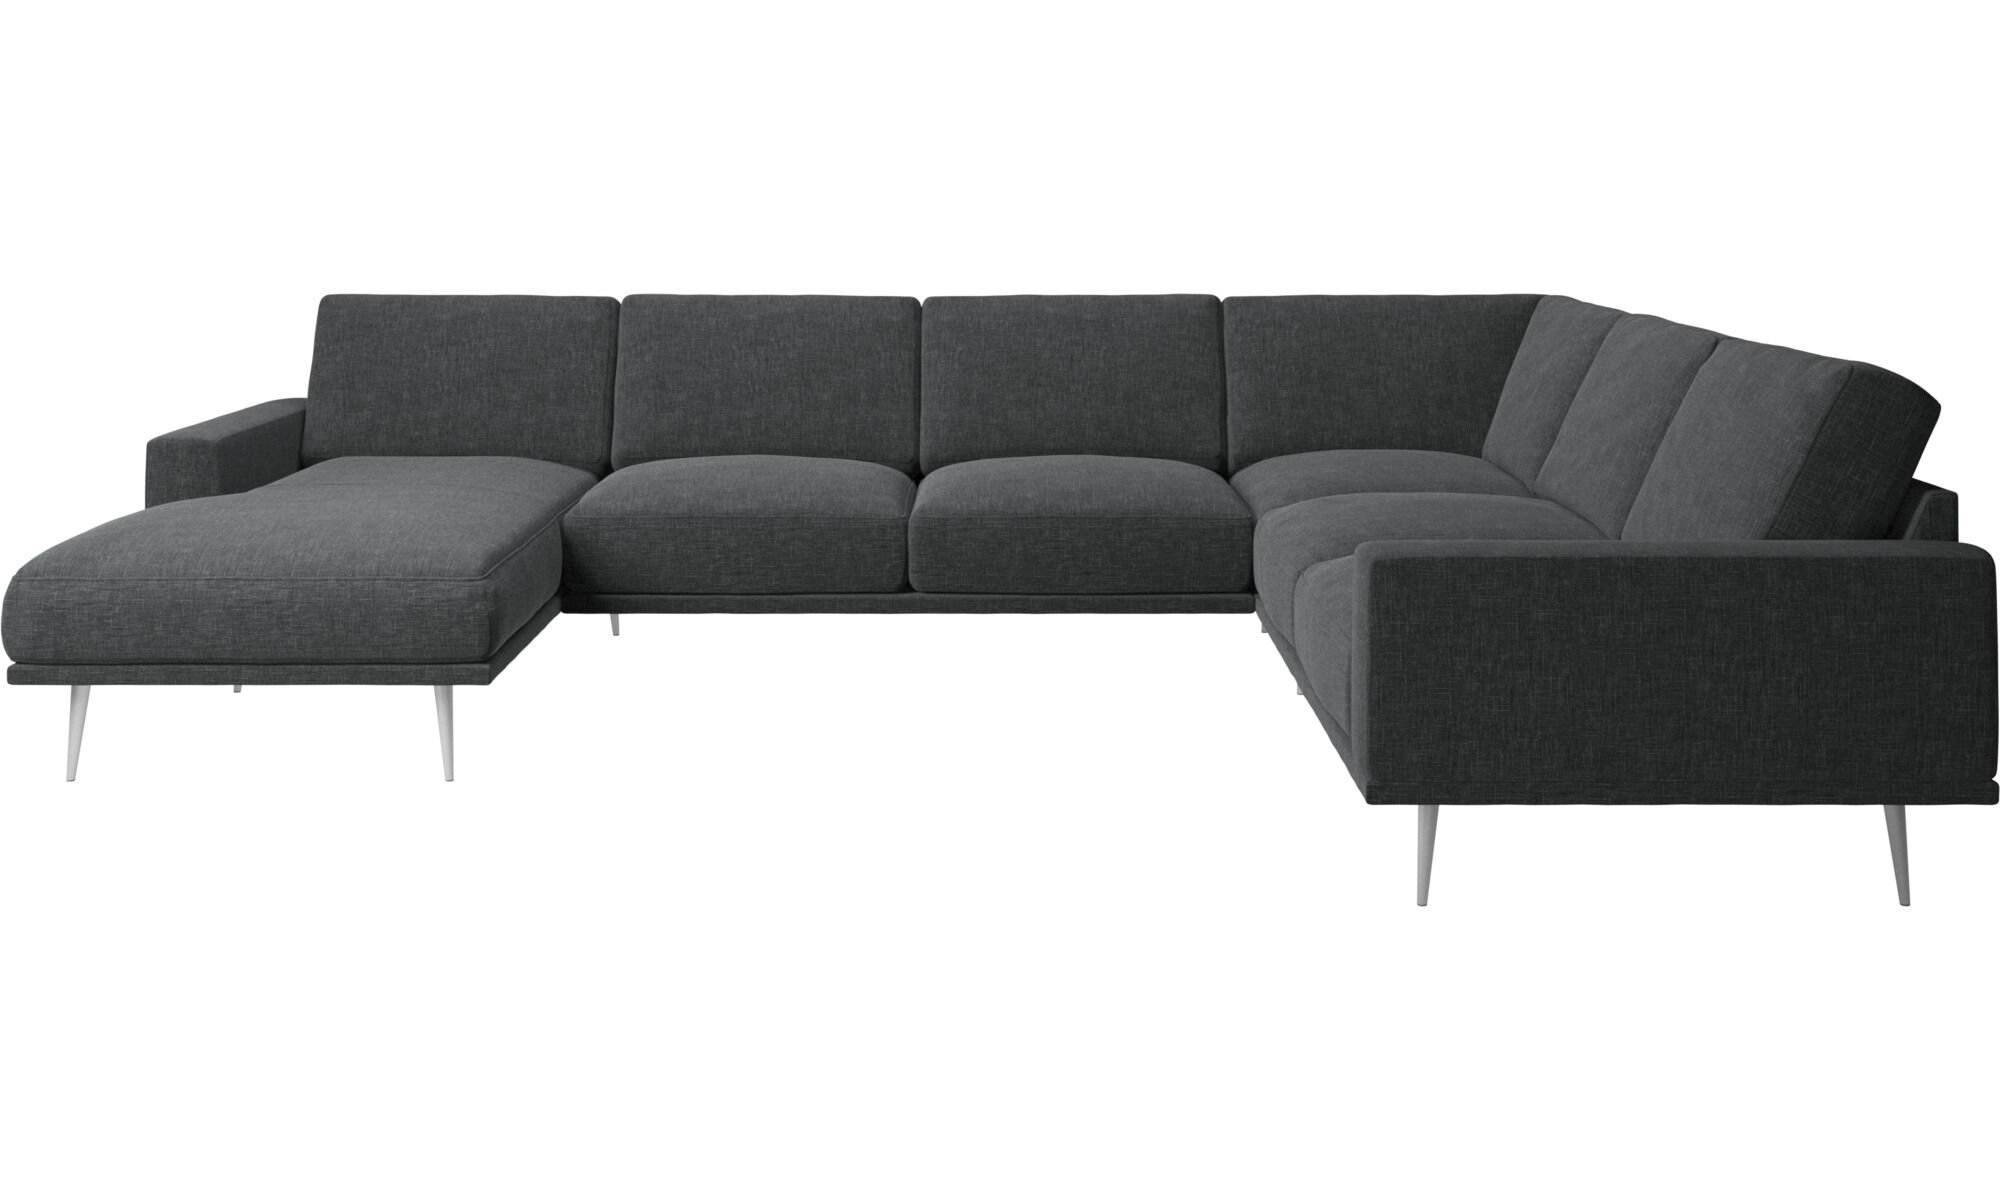 Chaise Lounge Sofas   Carlton Corner Sofa With Resting Unit   Gray   Fabric  ...